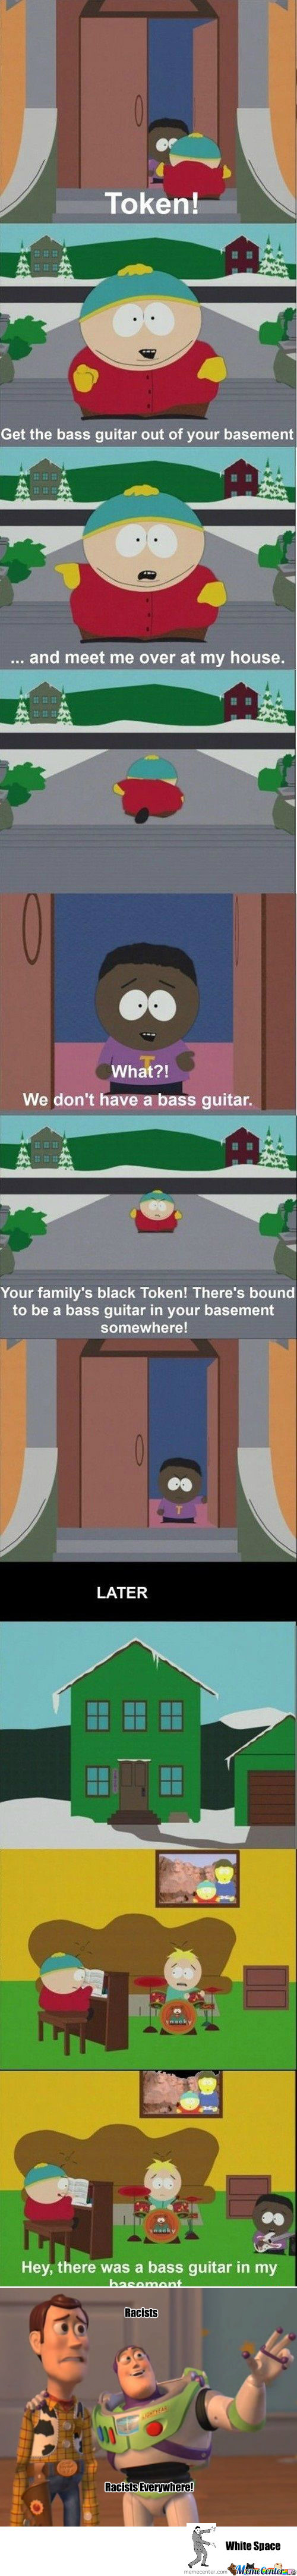 [RMX] Just Can't Get Enough Of South Park - Maybe Racist